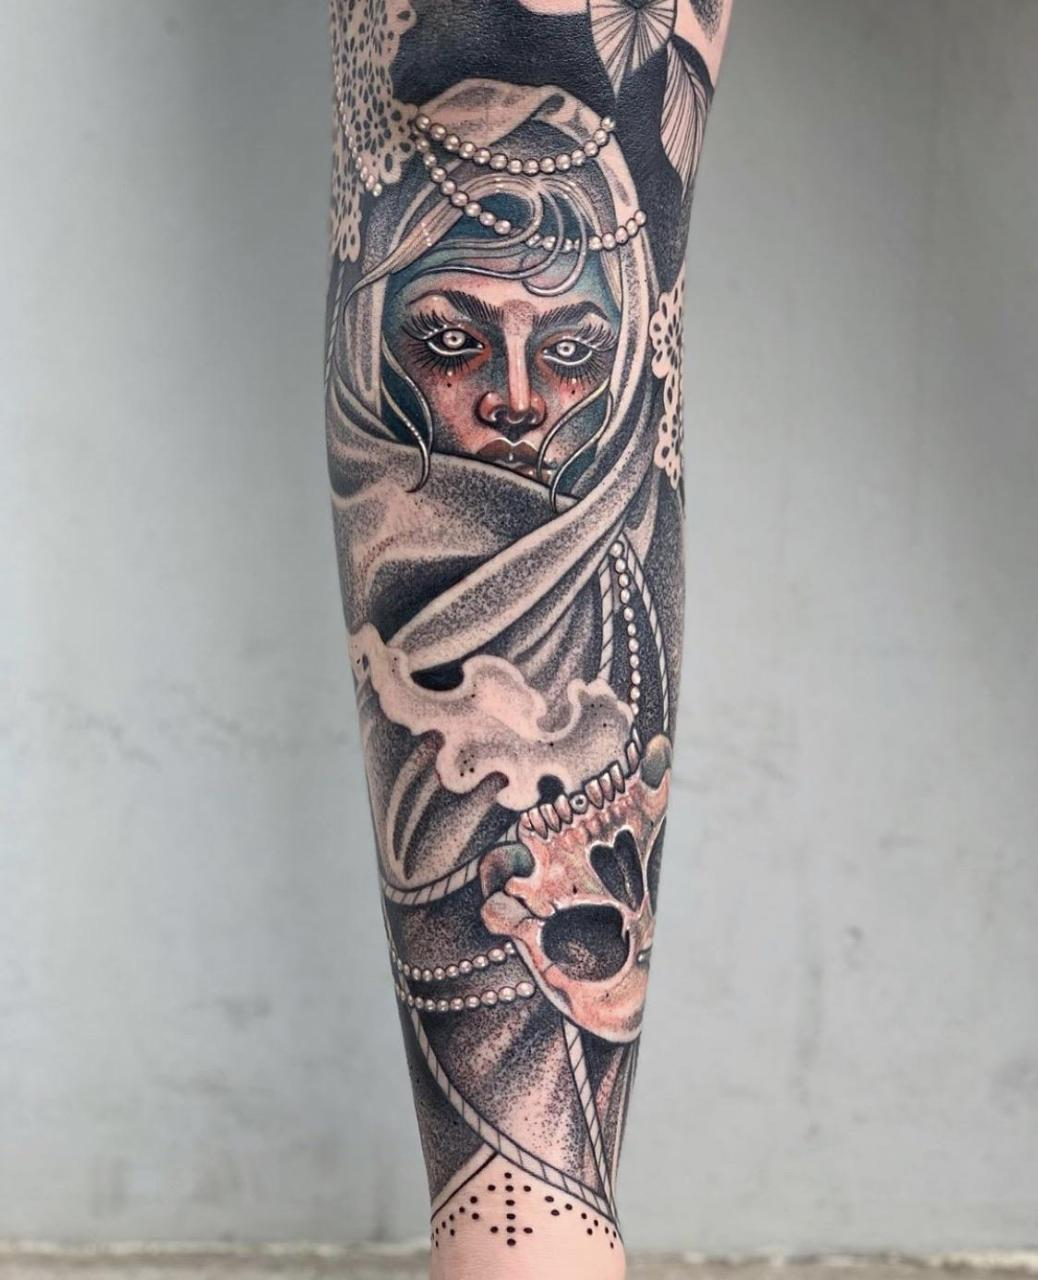 One angle of my leg sleeve. Done by Yvonne Kang, Honolulu HI @ 1 Point